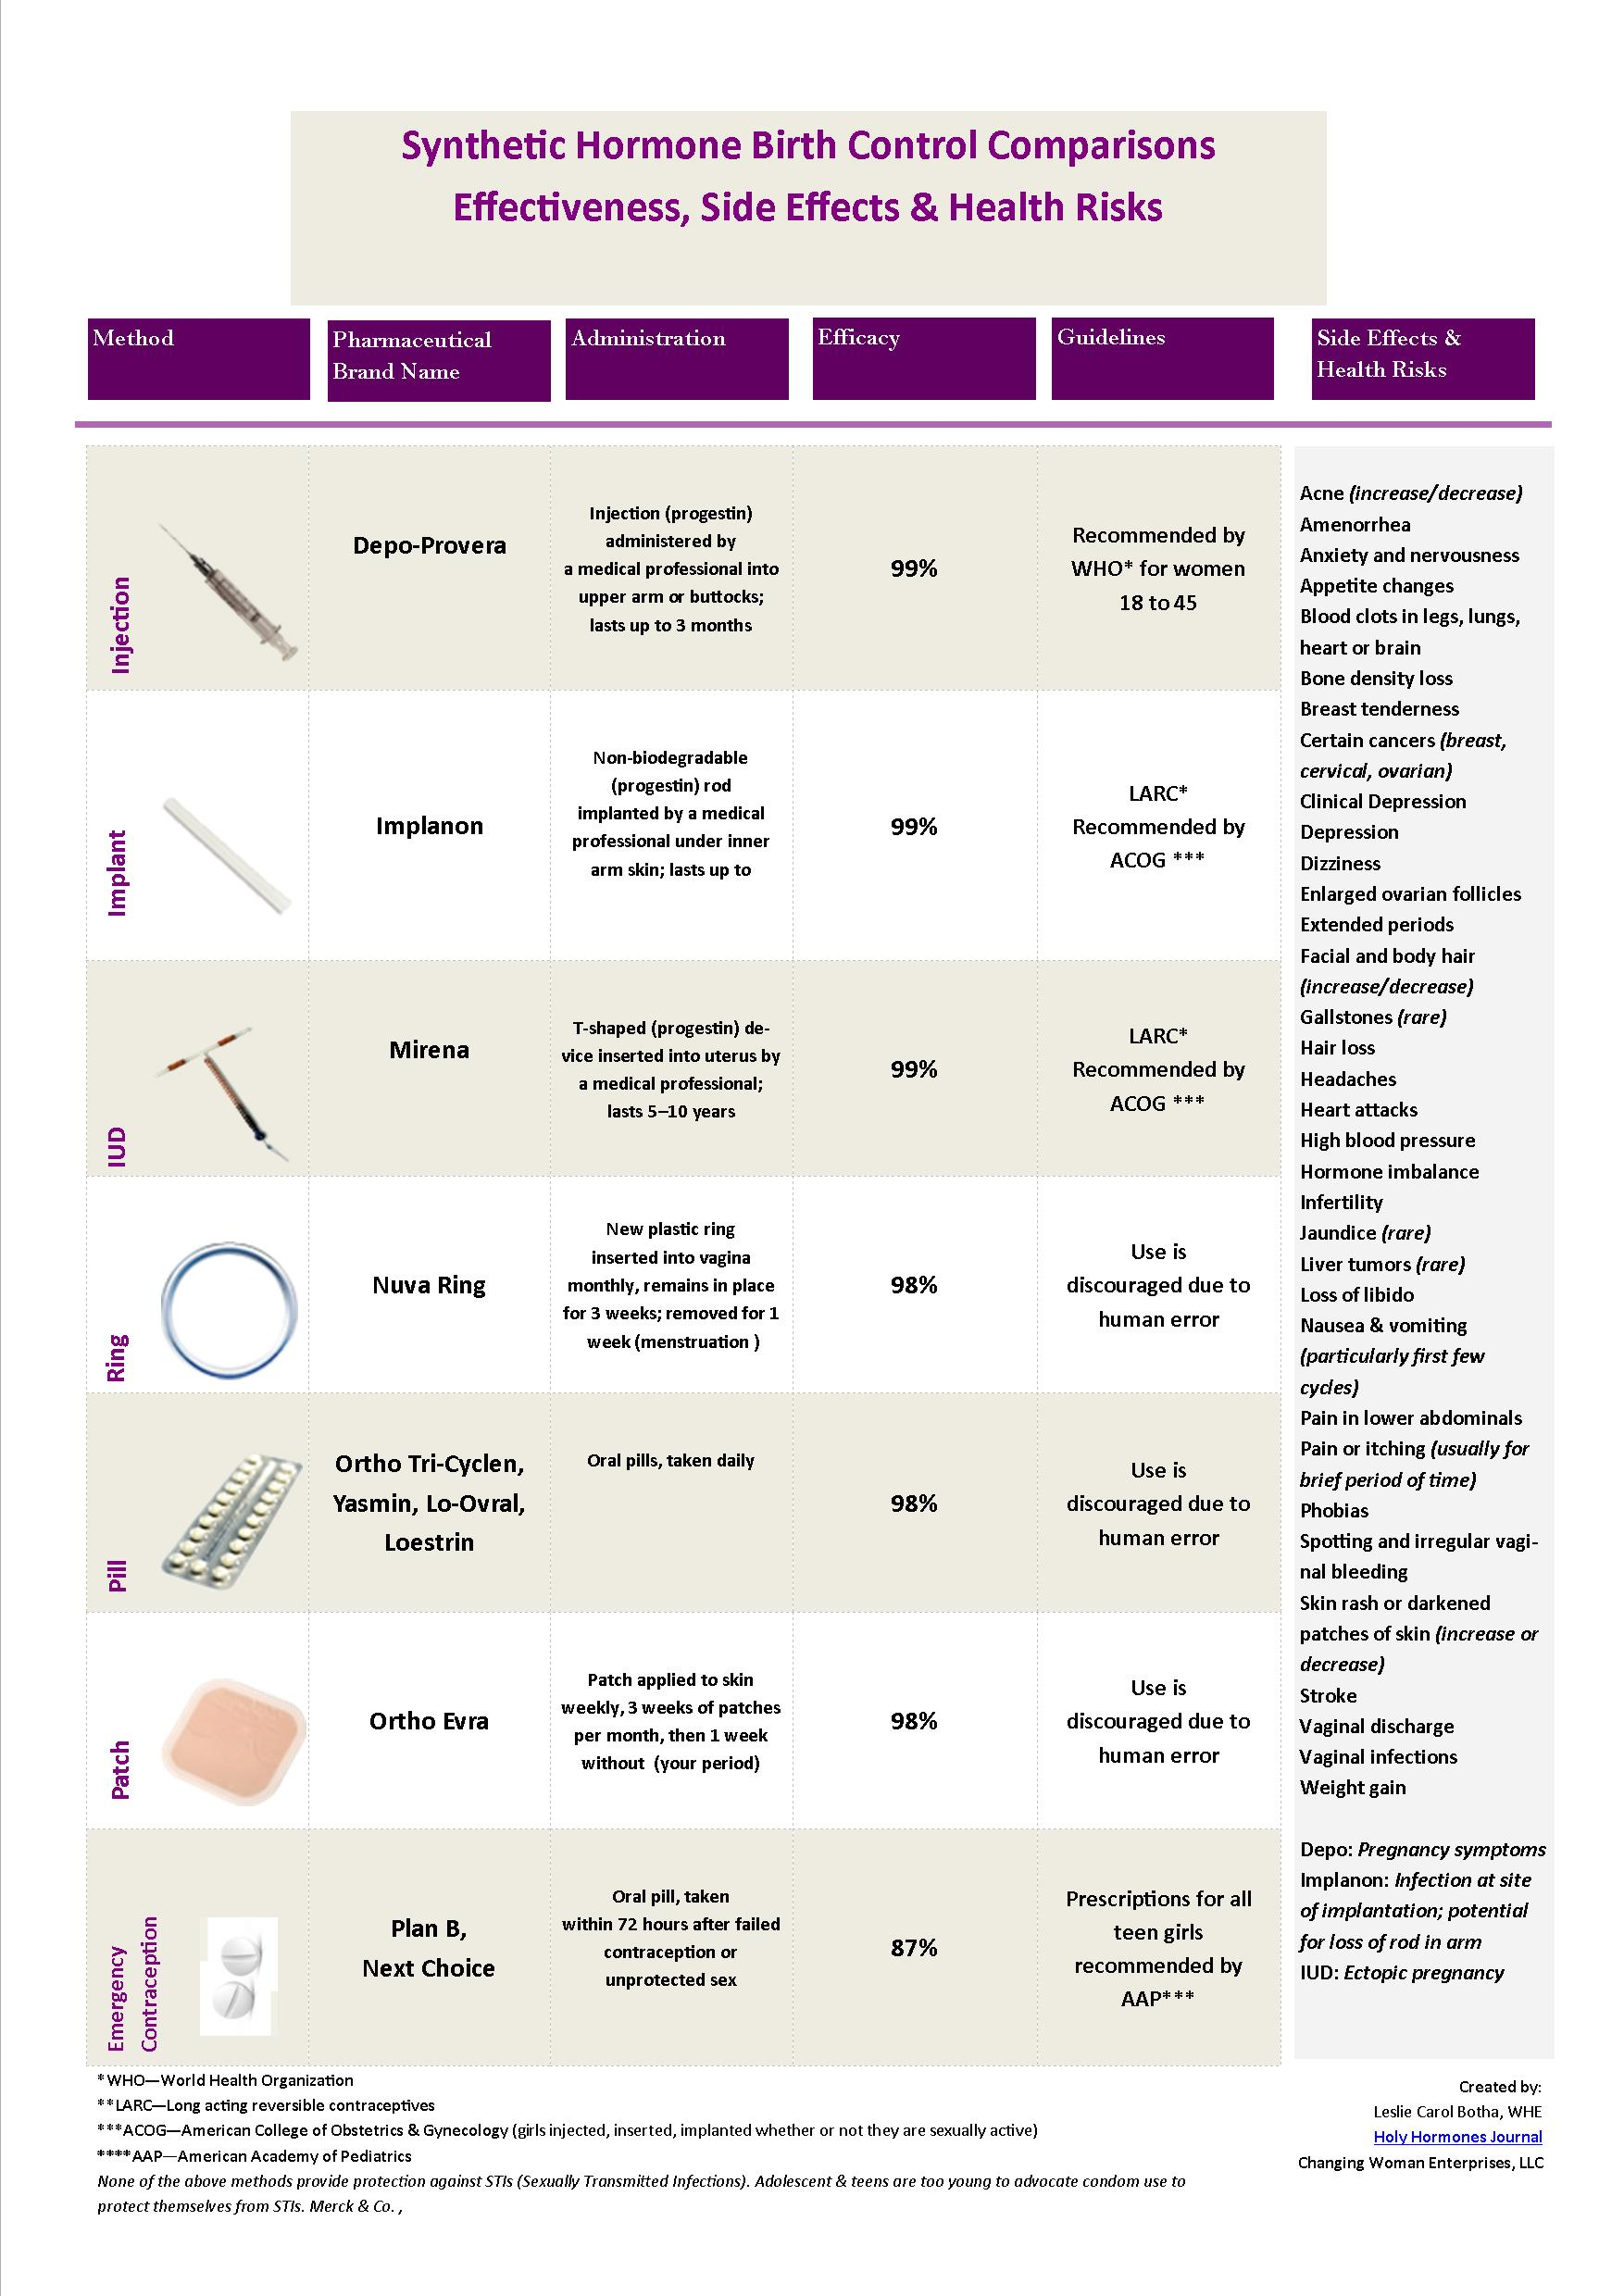 12.21.12 Synthetic Birth Control Comparisons and Health Risks